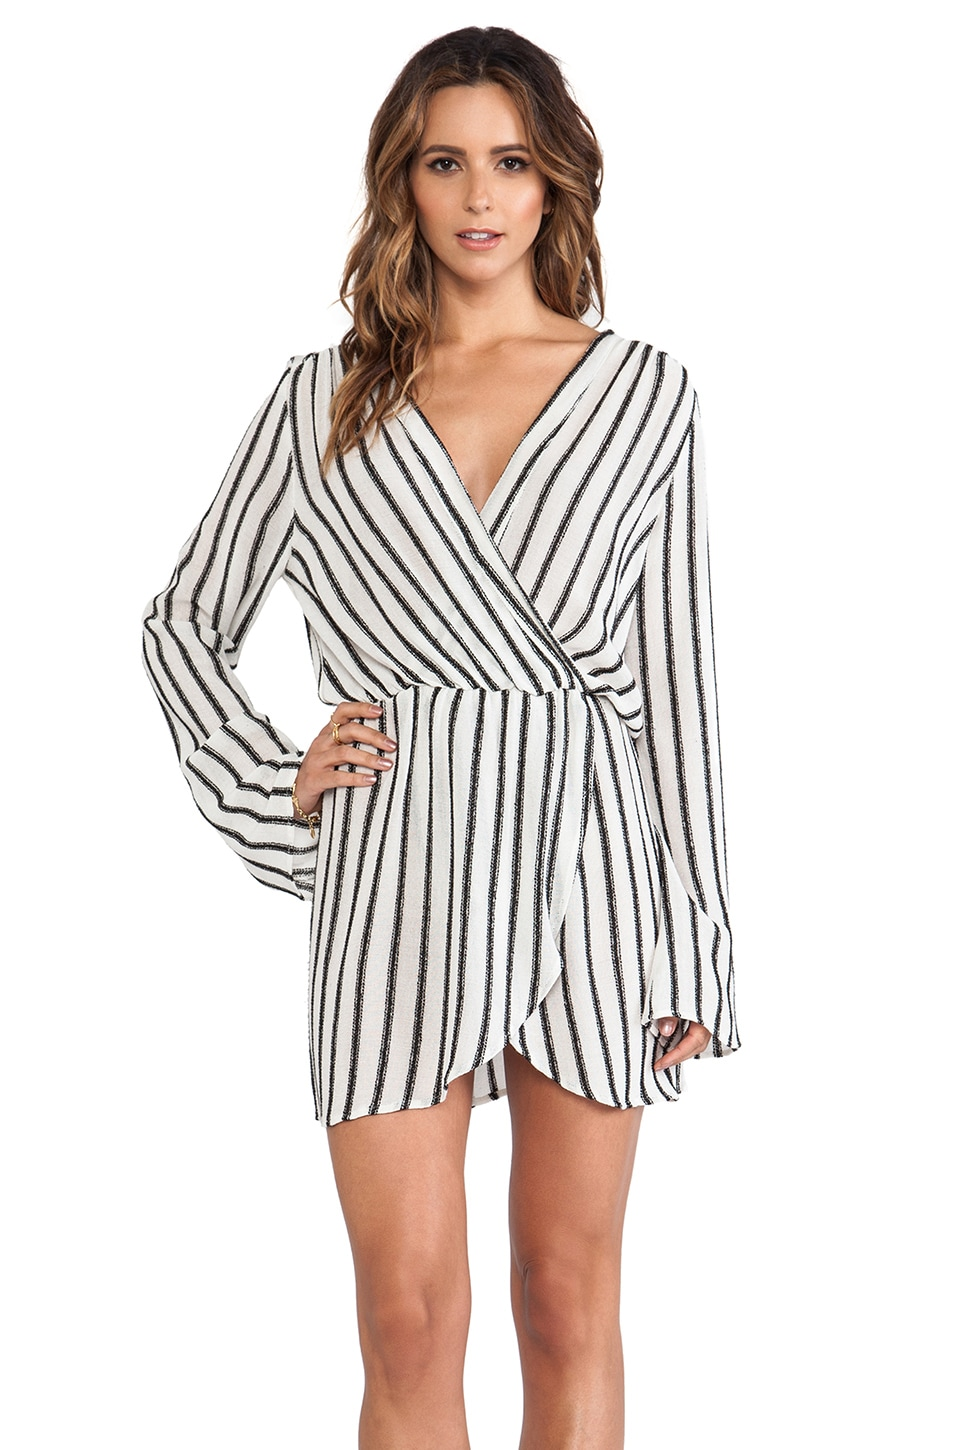 LIV Bell Sleeve Tunic Dress in Black & White Stripe